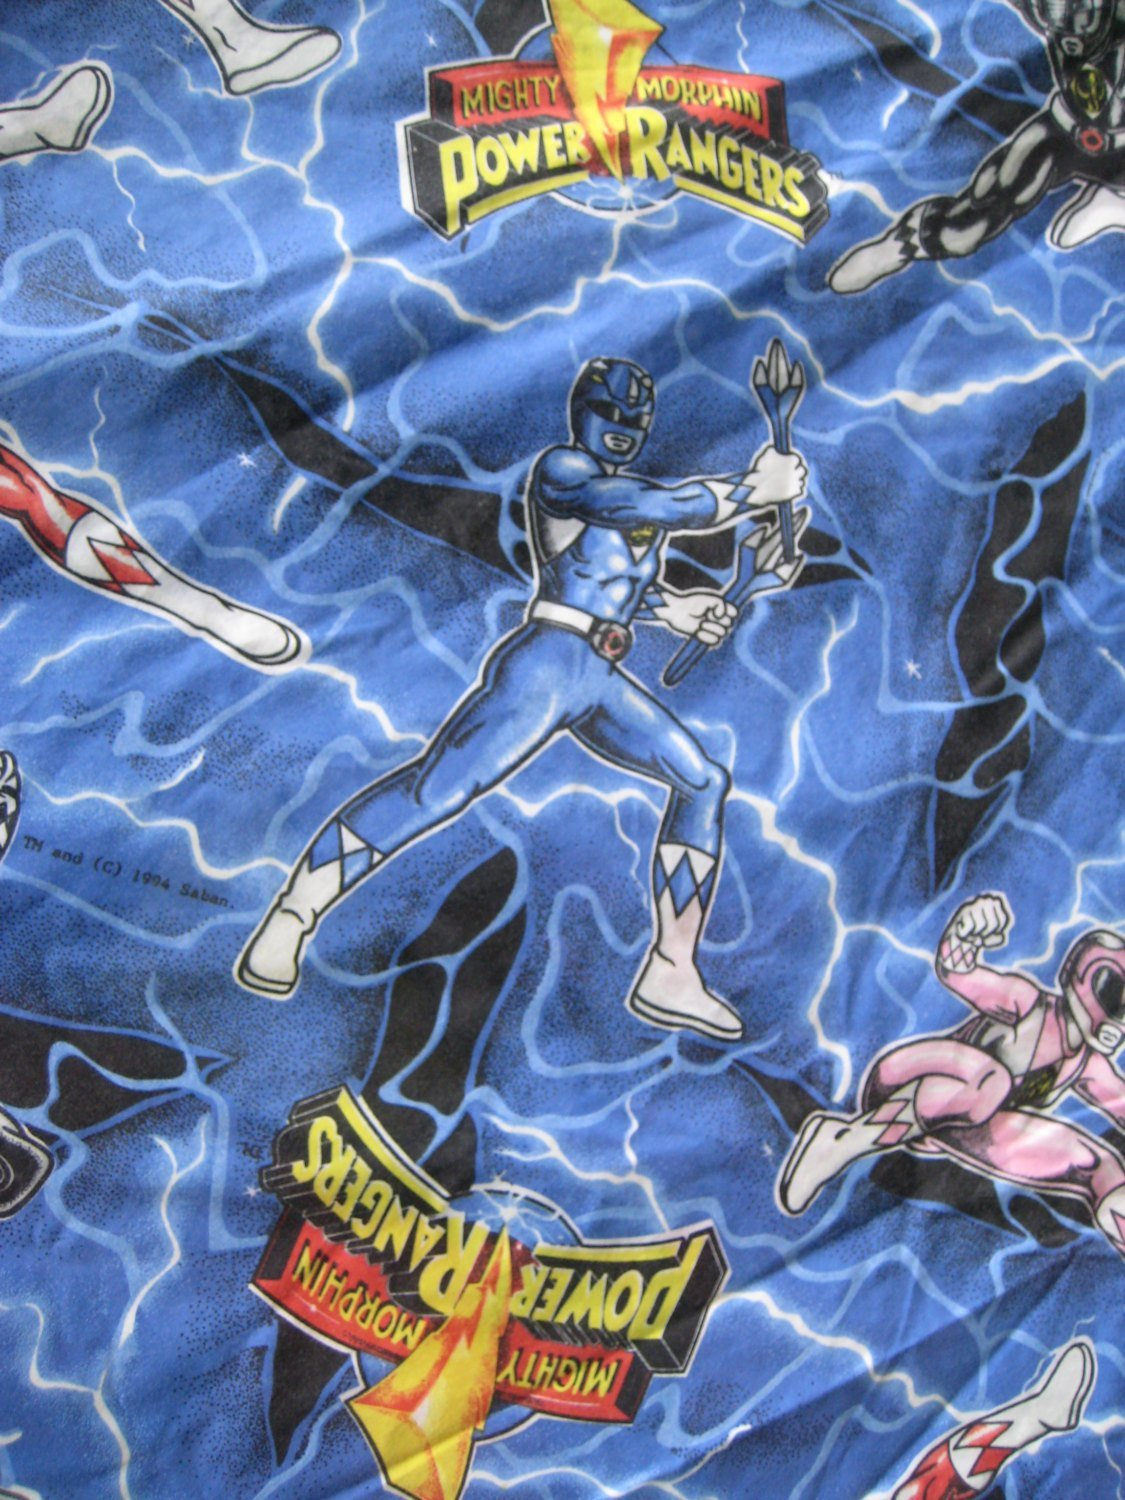 Best Vintage Mighty Morphin Power Rangers Bedding Cover For Duvet With Pictures